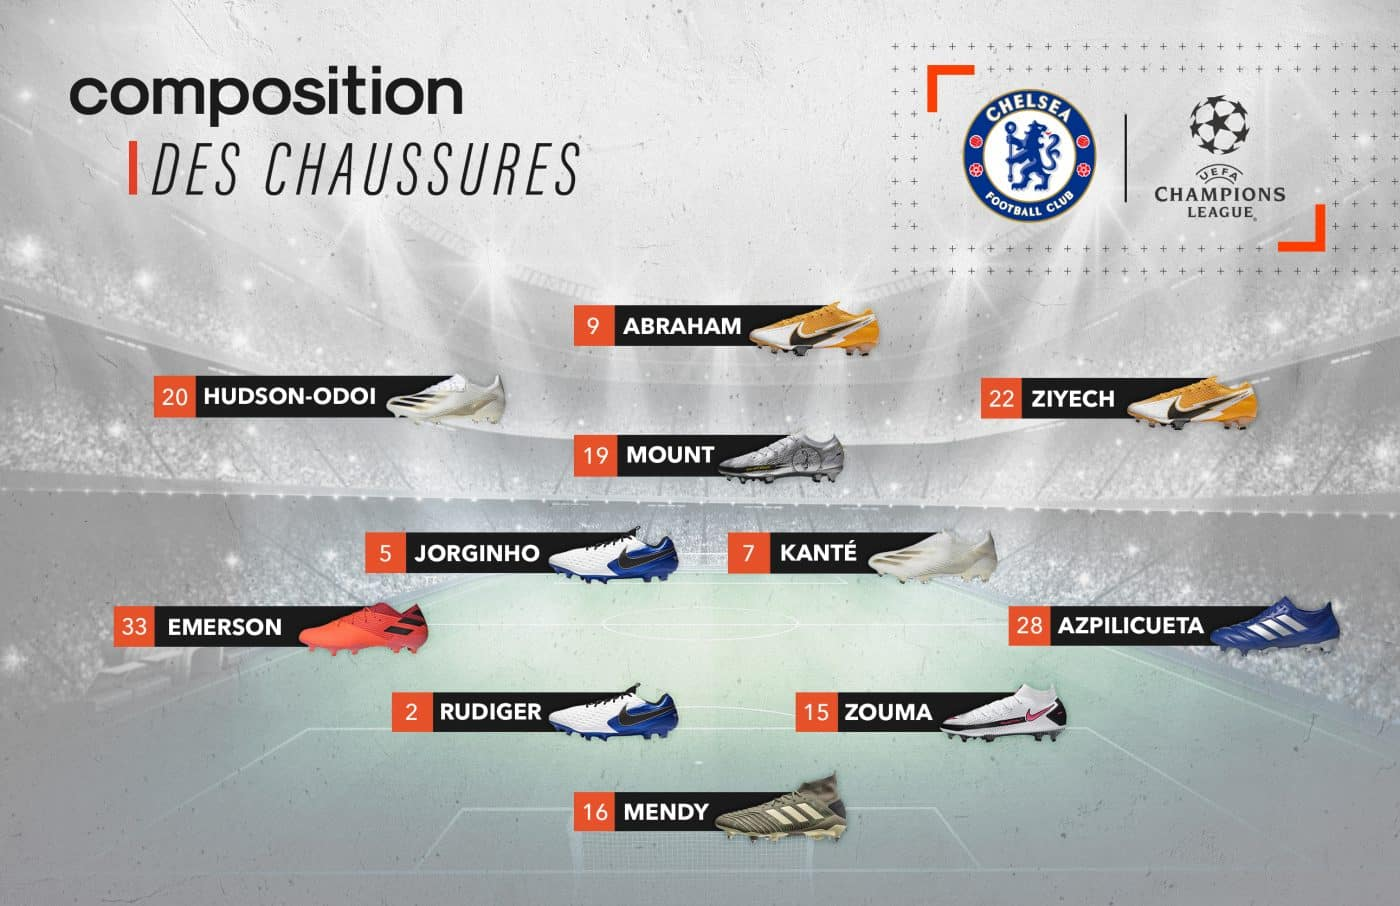 composition-chaussures-stade-rennais-rennes-chelsea-footpack-3